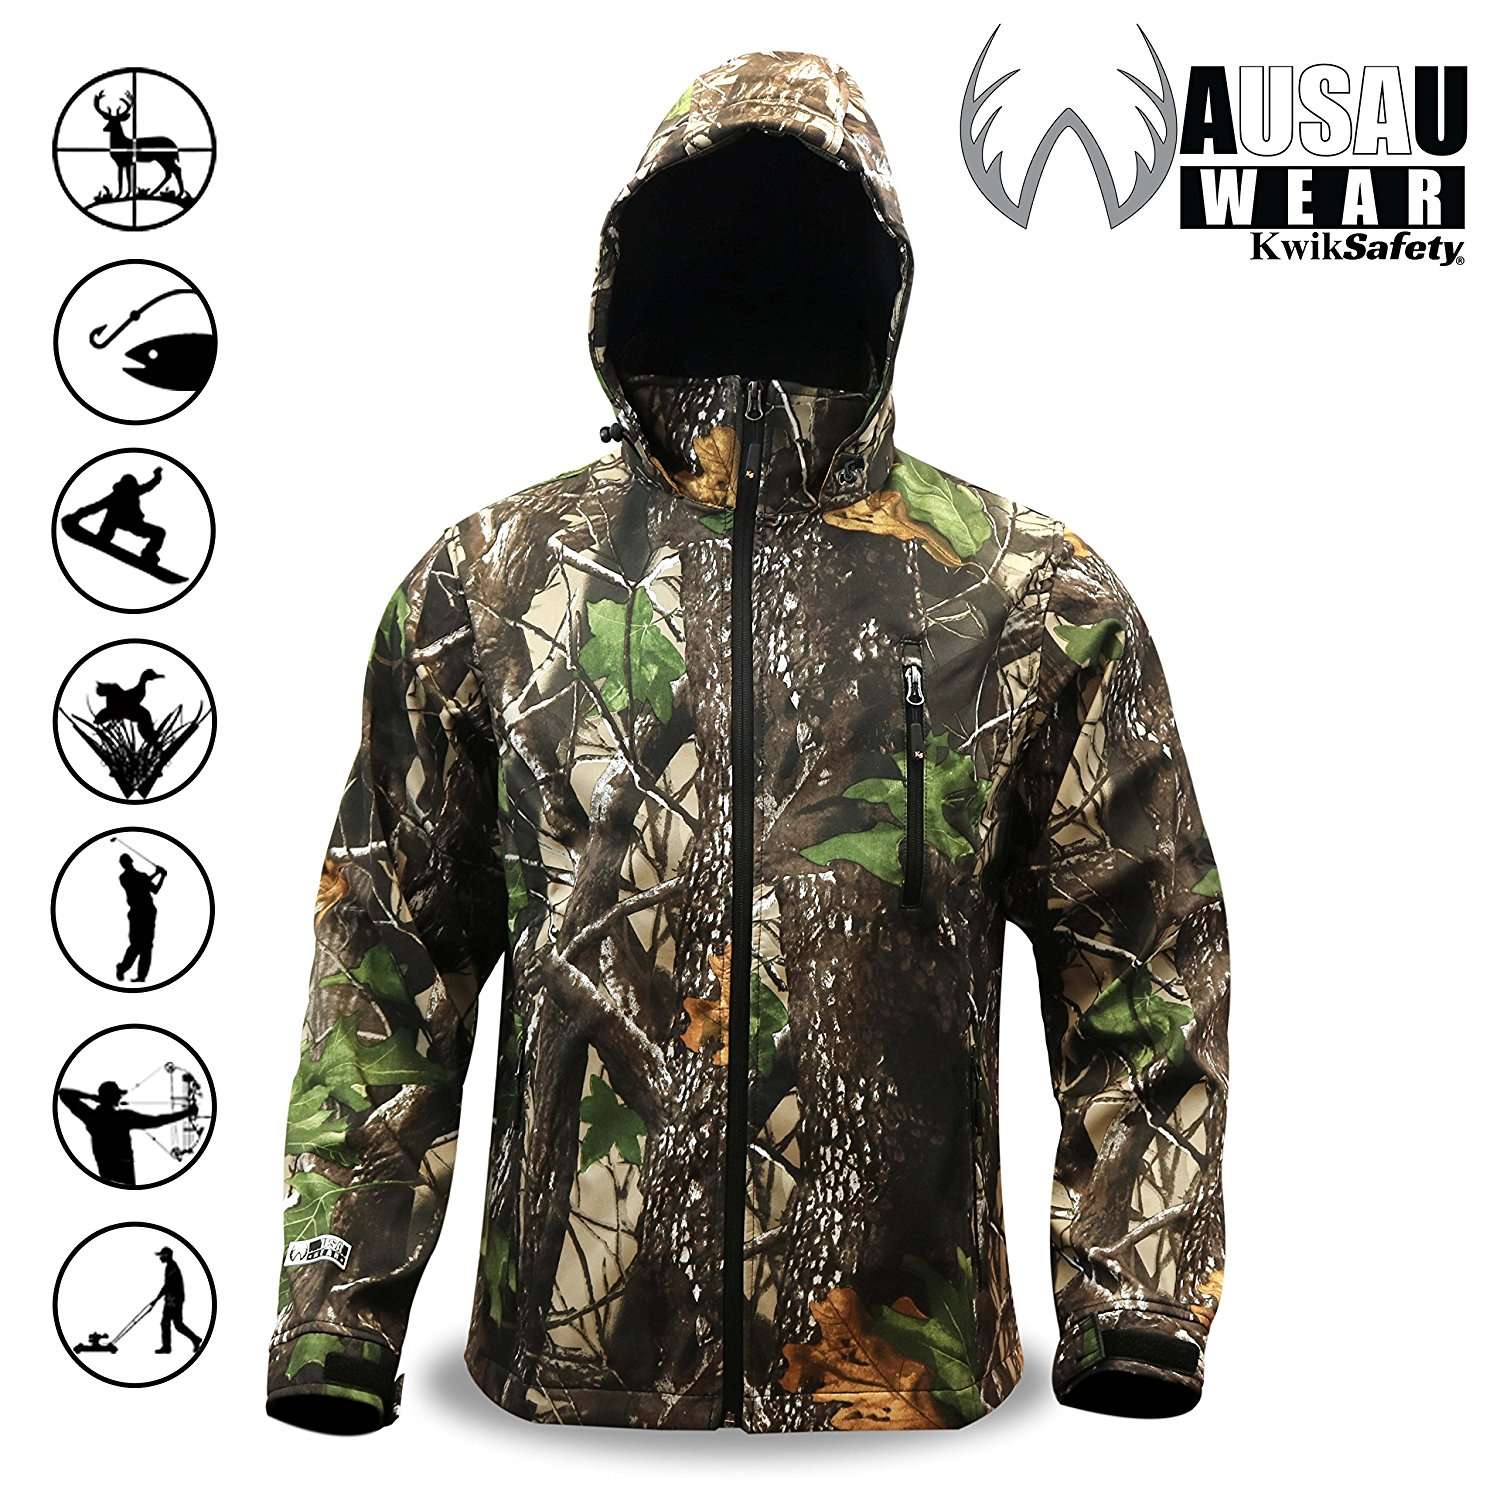 c7d25065852d1 Get Quotations · KwikSafety HUNTSMAN   Camo Rain Suit & Camo Soft Shell  Jacket   All Year Water Resistant